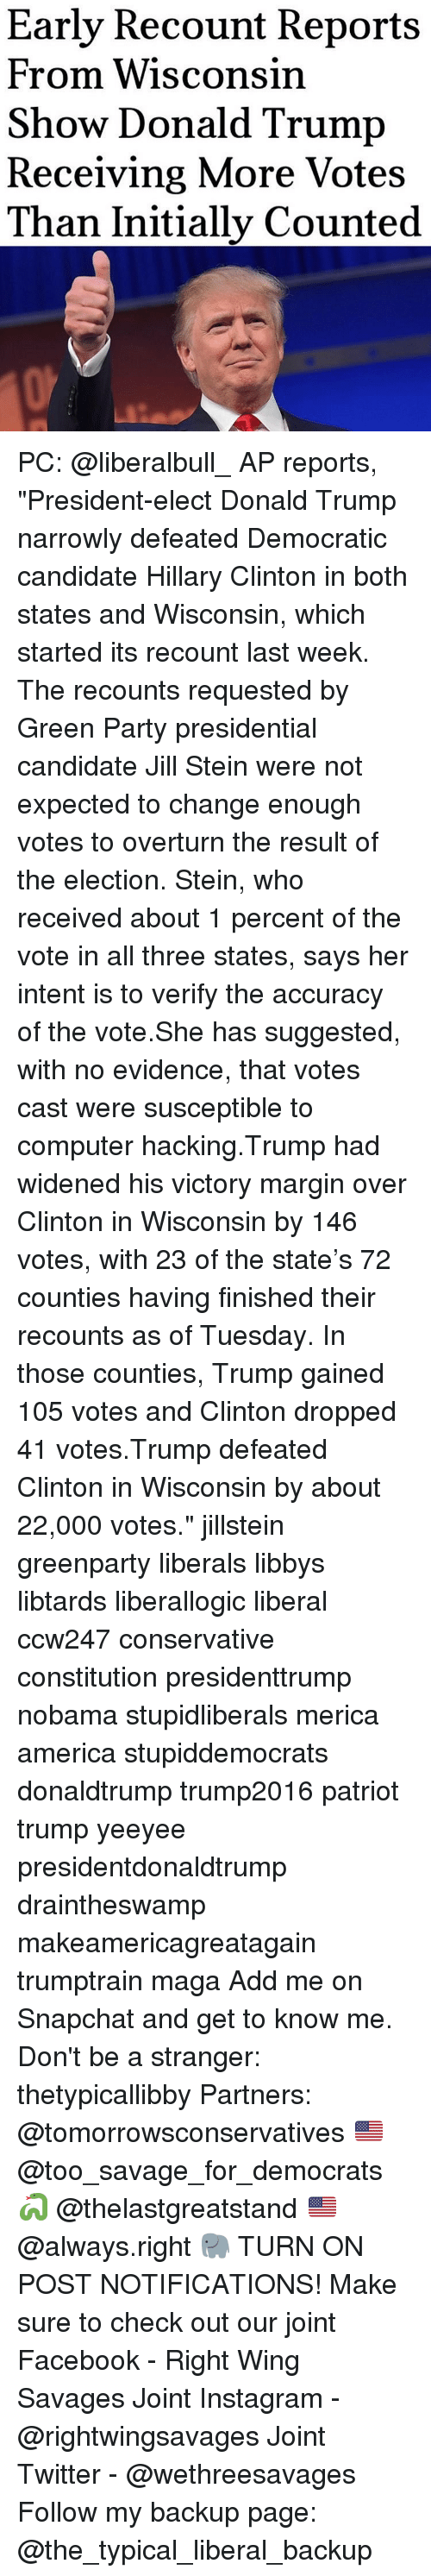 "Marginalize: Early Recount Reports  From Wisconsin  Show Donald Trump  Receiving More Votes  Than Initially Counted PC: @liberalbull_ AP reports, ""President-elect Donald Trump narrowly defeated Democratic candidate Hillary Clinton in both states and Wisconsin, which started its recount last week. The recounts requested by Green Party presidential candidate Jill Stein were not expected to change enough votes to overturn the result of the election. Stein, who received about 1 percent of the vote in all three states, says her intent is to verify the accuracy of the vote.She has suggested, with no evidence, that votes cast were susceptible to computer hacking.Trump had widened his victory margin over Clinton in Wisconsin by 146 votes, with 23 of the state's 72 counties having finished their recounts as of Tuesday. In those counties, Trump gained 105 votes and Clinton dropped 41 votes.Trump defeated Clinton in Wisconsin by about 22,000 votes."" jillstein greenparty liberals libbys libtards liberallogic liberal ccw247 conservative constitution presidenttrump nobama stupidliberals merica america stupiddemocrats donaldtrump trump2016 patriot trump yeeyee presidentdonaldtrump draintheswamp makeamericagreatagain trumptrain maga Add me on Snapchat and get to know me. Don't be a stranger: thetypicallibby Partners: @tomorrowsconservatives 🇺🇸 @too_savage_for_democrats 🐍 @thelastgreatstand 🇺🇸 @always.right 🐘 TURN ON POST NOTIFICATIONS! Make sure to check out our joint Facebook - Right Wing Savages Joint Instagram - @rightwingsavages Joint Twitter - @wethreesavages Follow my backup page: @the_typical_liberal_backup"